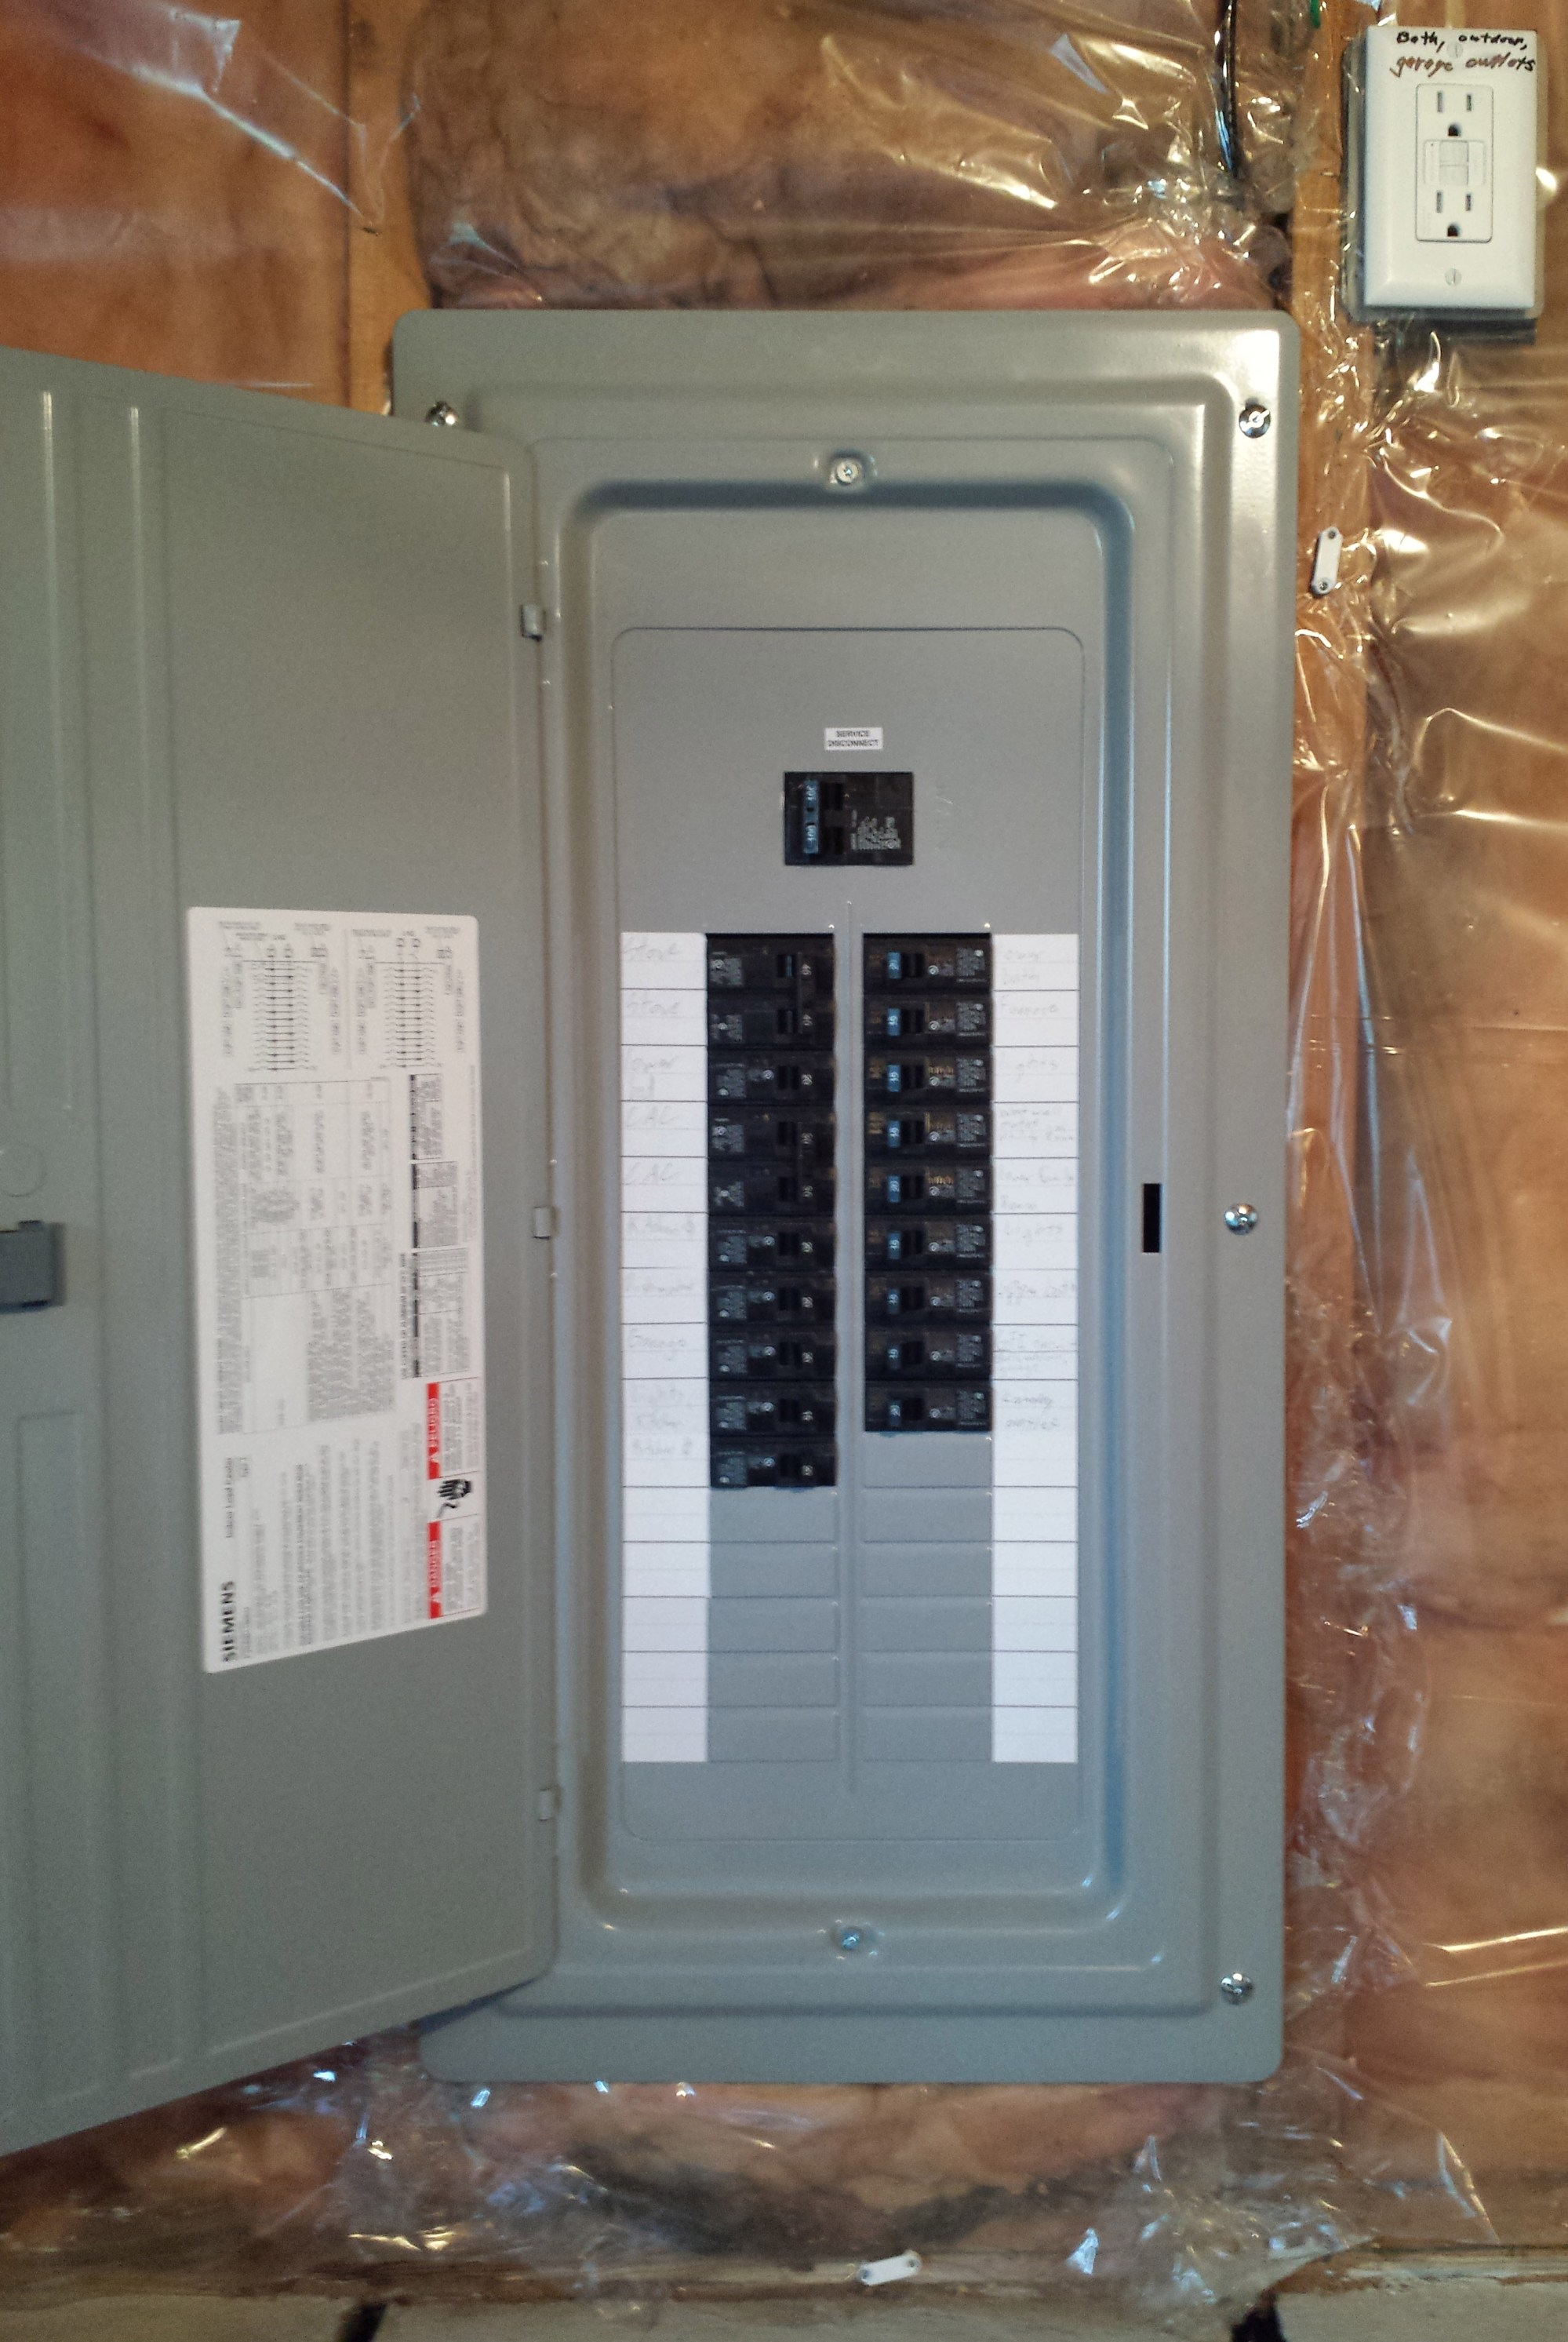 hight resolution of replace fuse box replace fpe breakers total electric lennox fuse box 100 amp panel replacing an